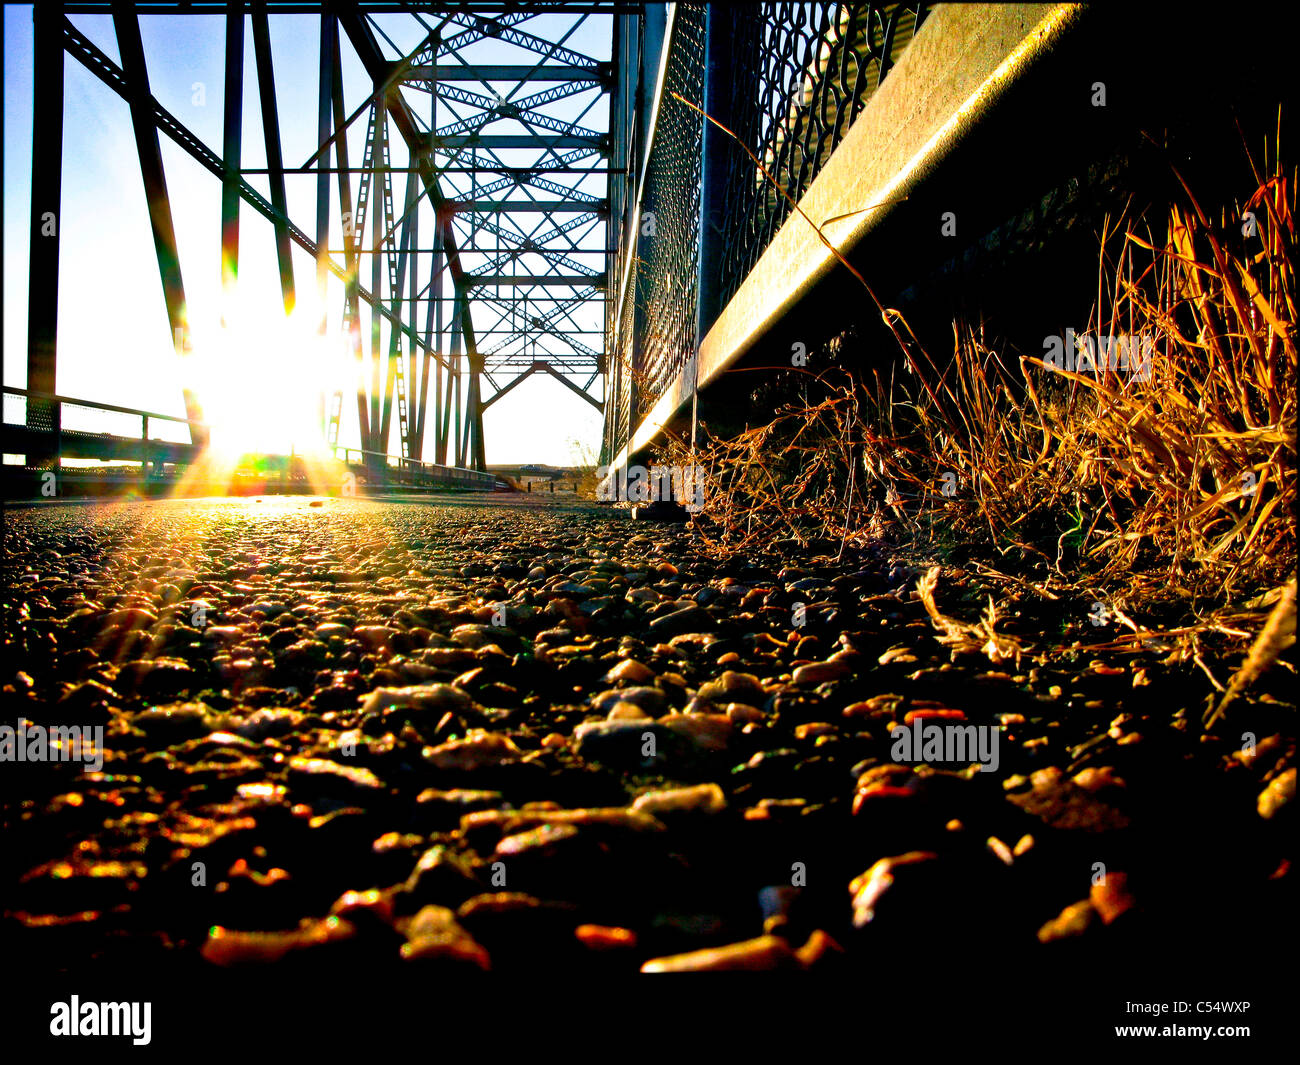 Pedestrian bridge at sunset - Stock Image